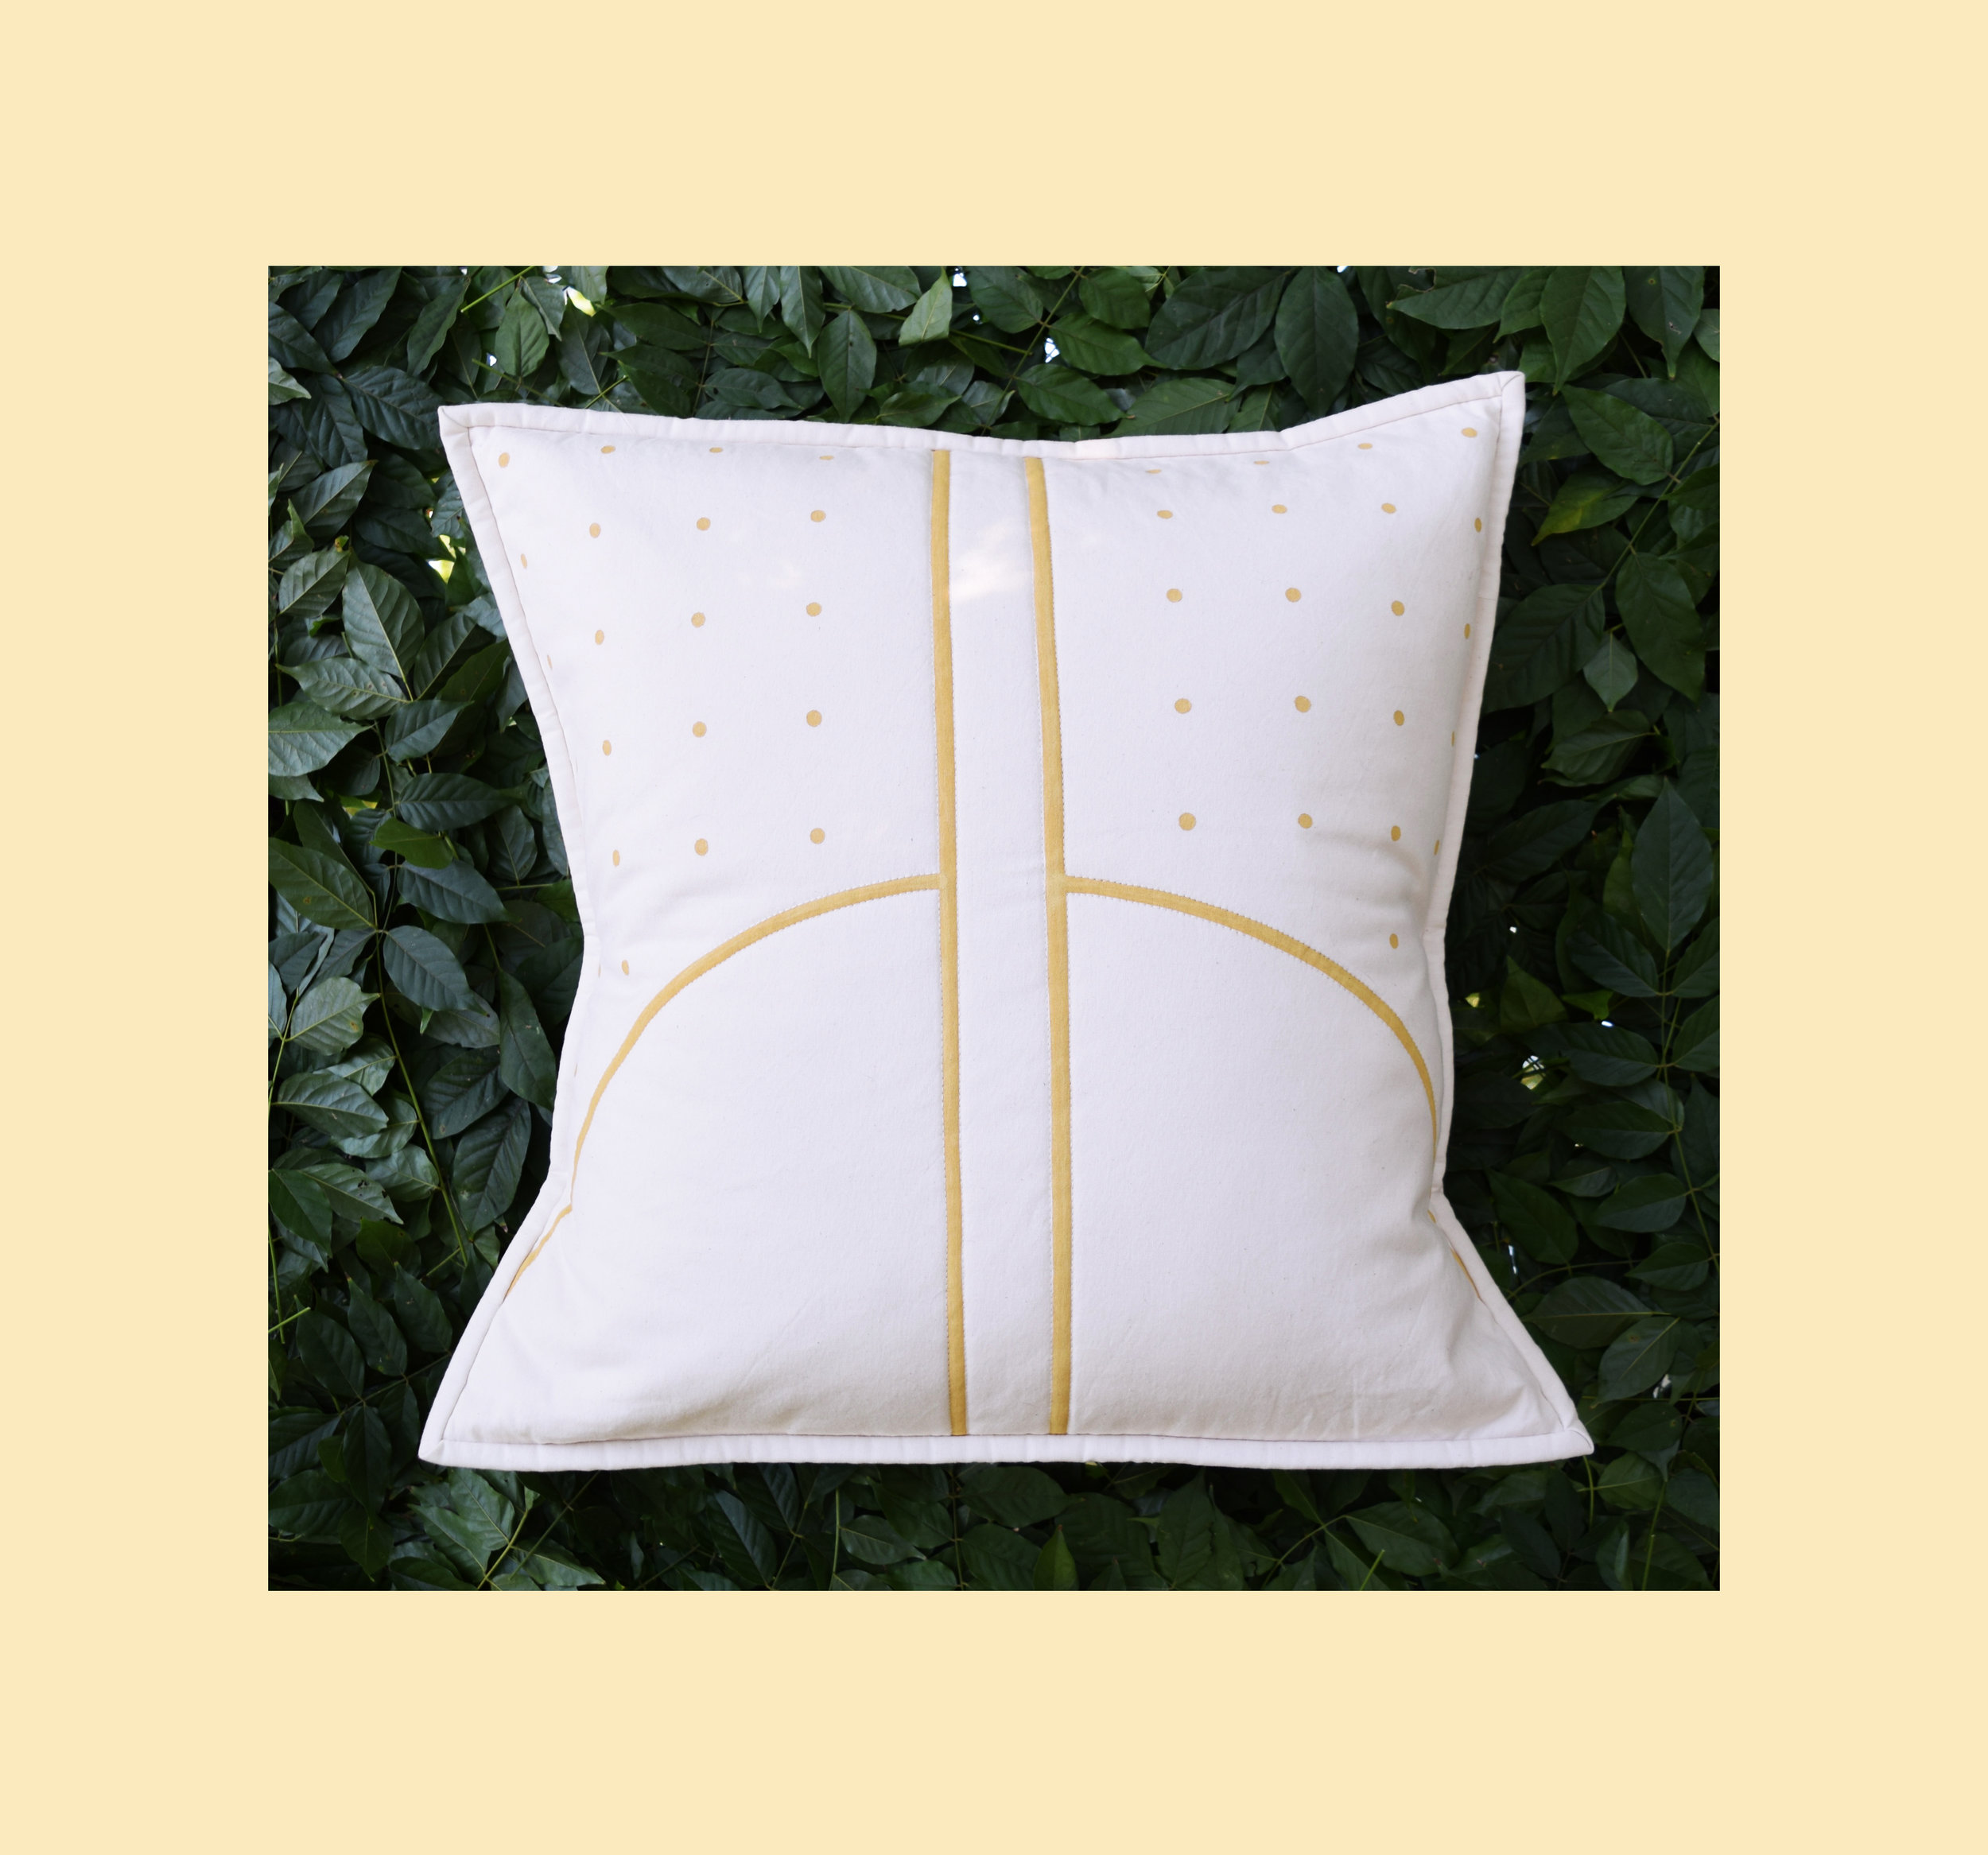 Court Quilted Pillow Cover   Hand-painted design, constructed from unbleached cotton canvas